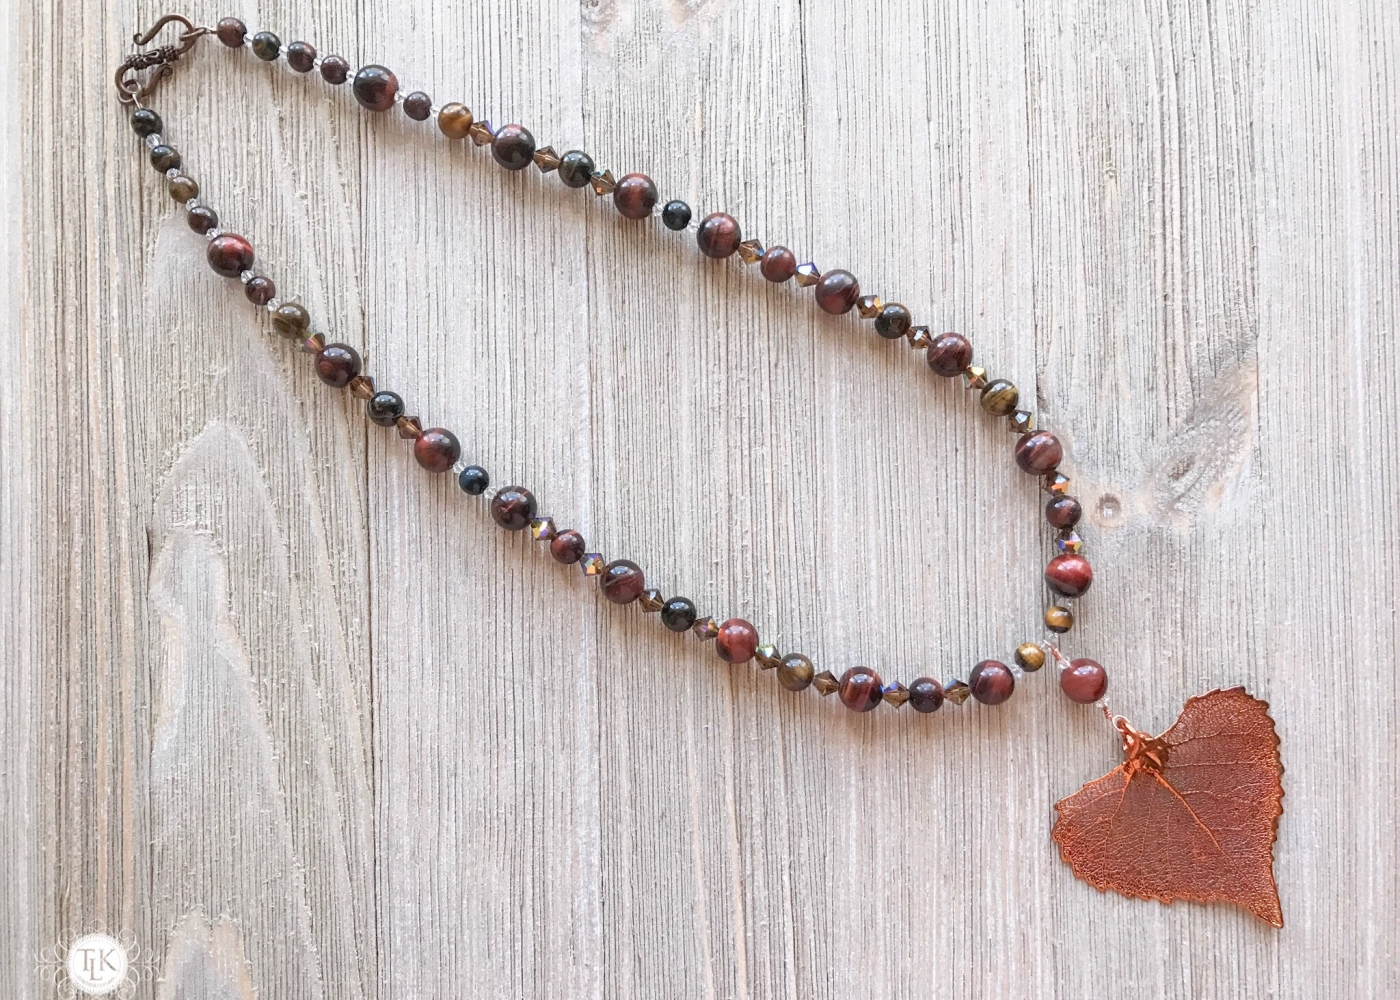 THREE LITTLE KITTENS | Copper Iridescent Cottonwood Leaf Tiger Eye Necklace 3649n